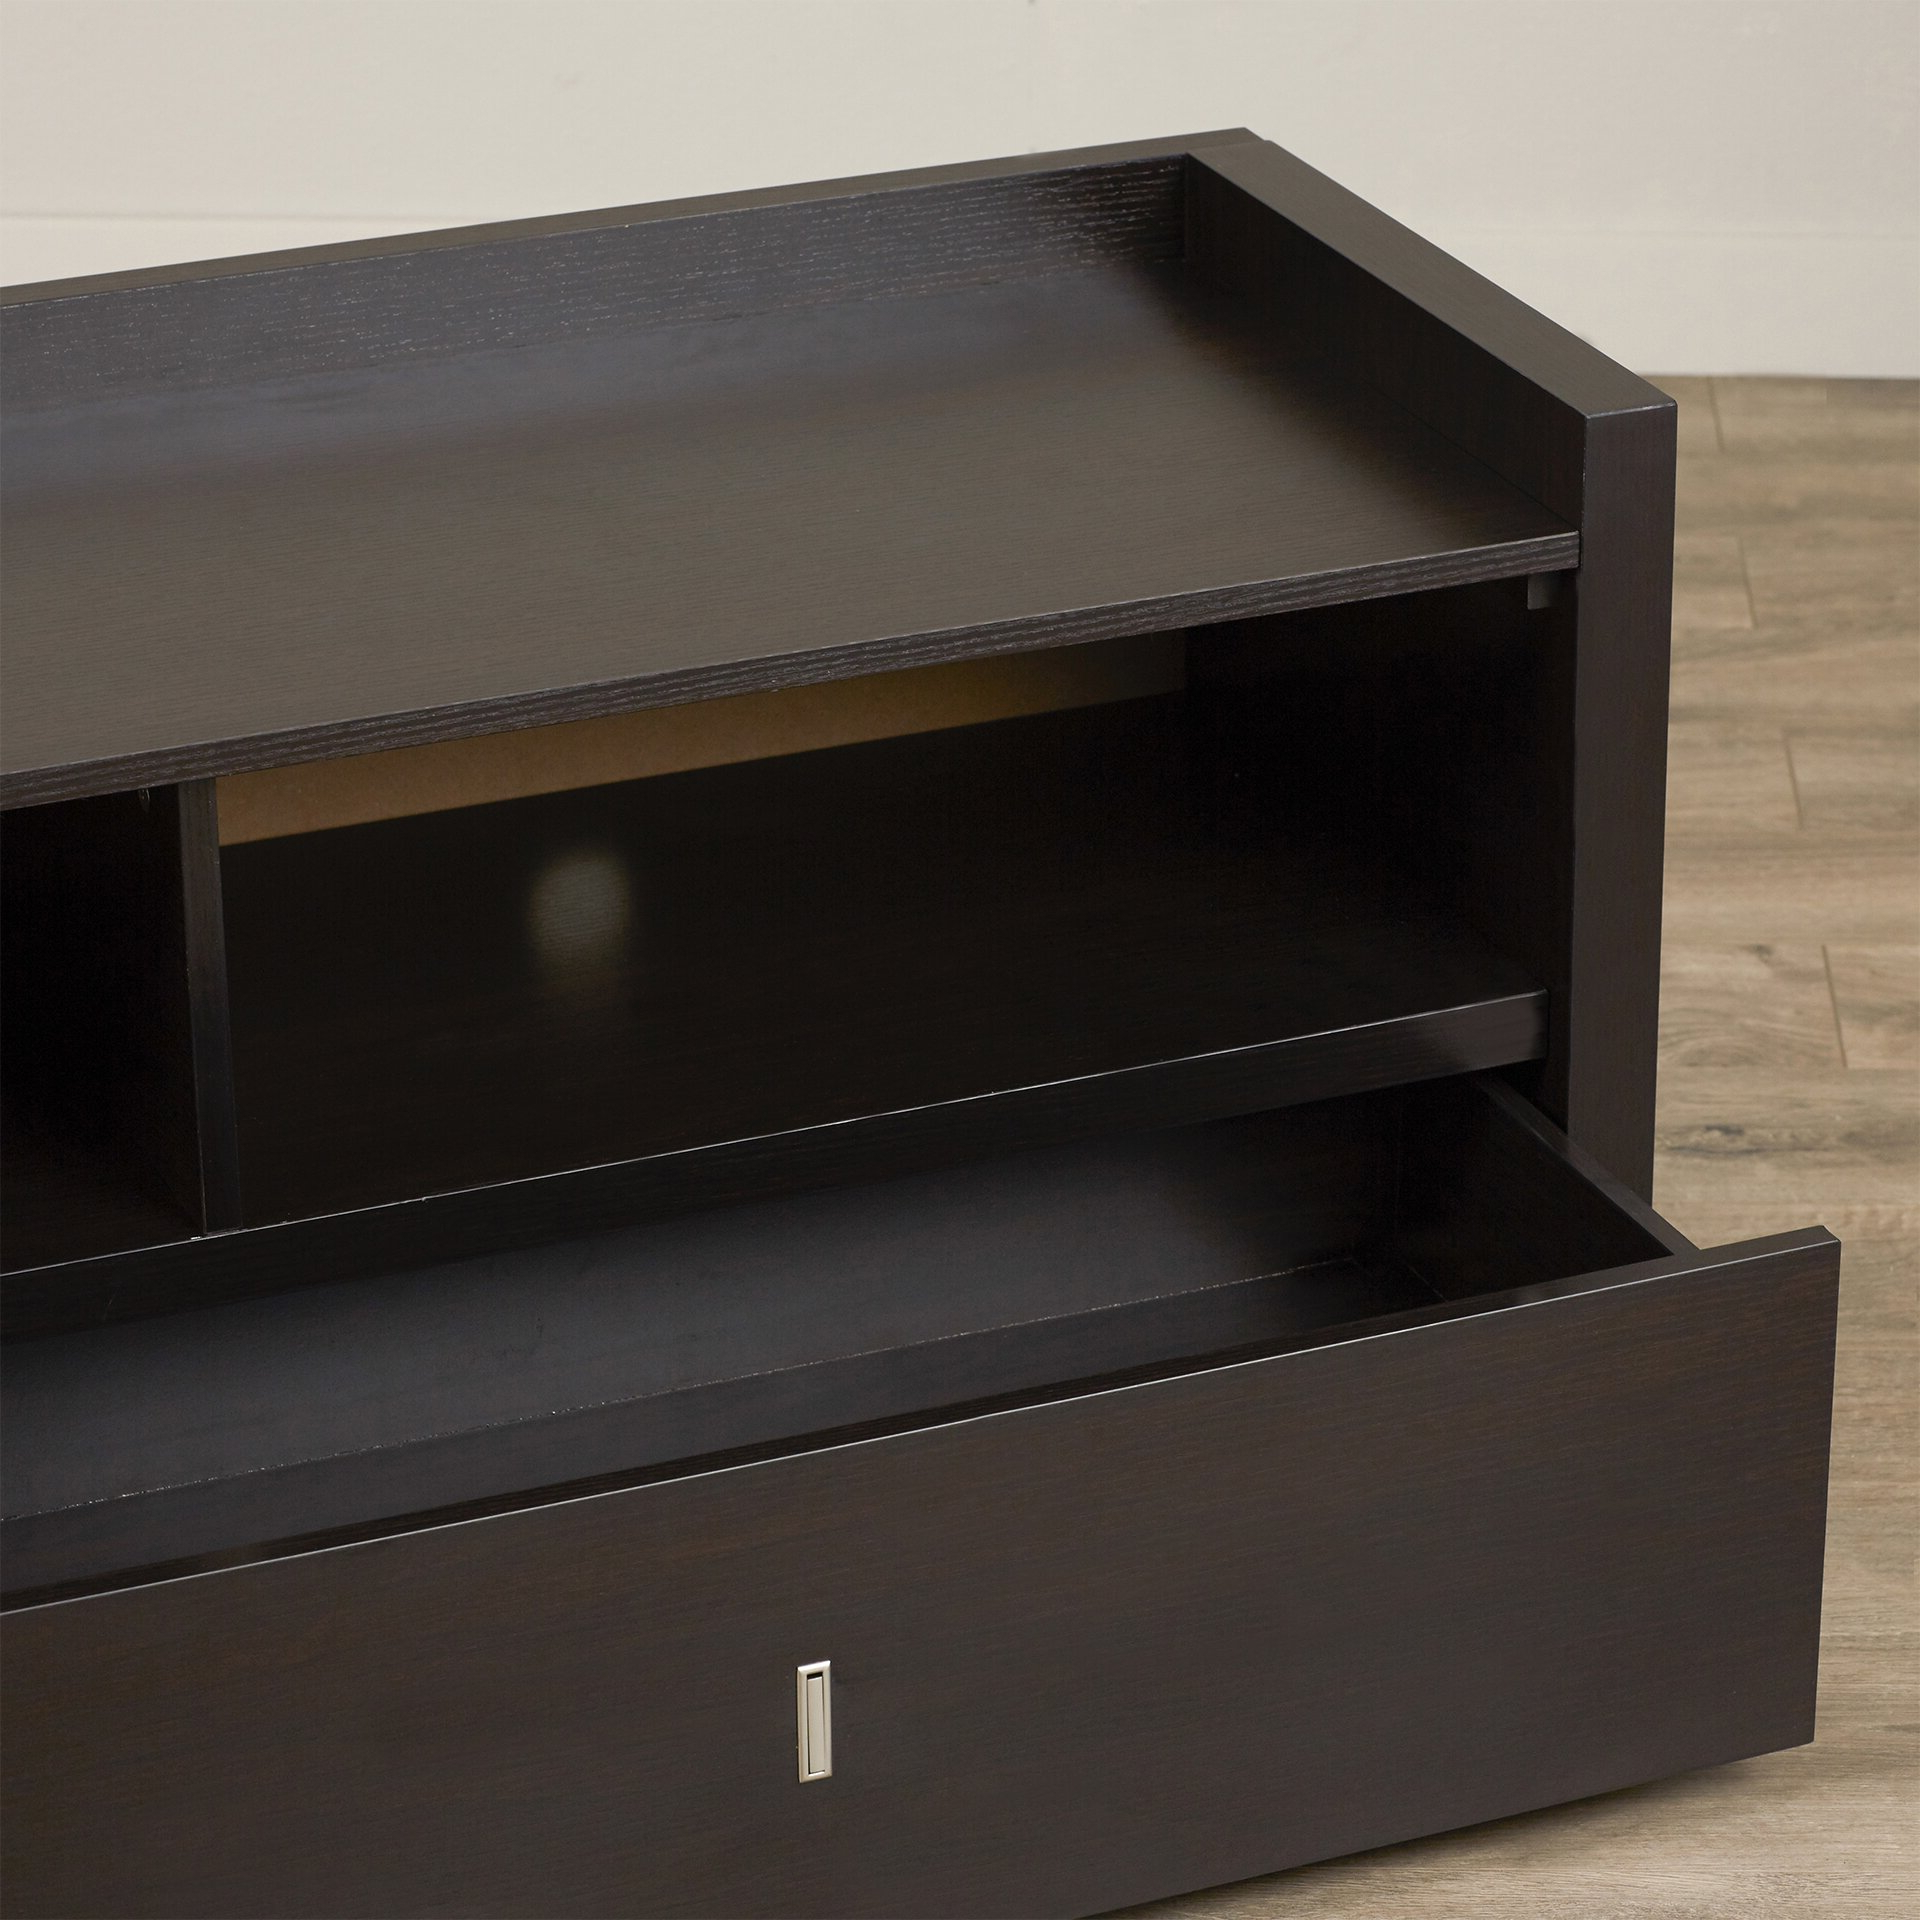 Logan Tv Stands Intended For Well Known Wade Logan Benton Tv Stand & Reviews (View 8 of 10)